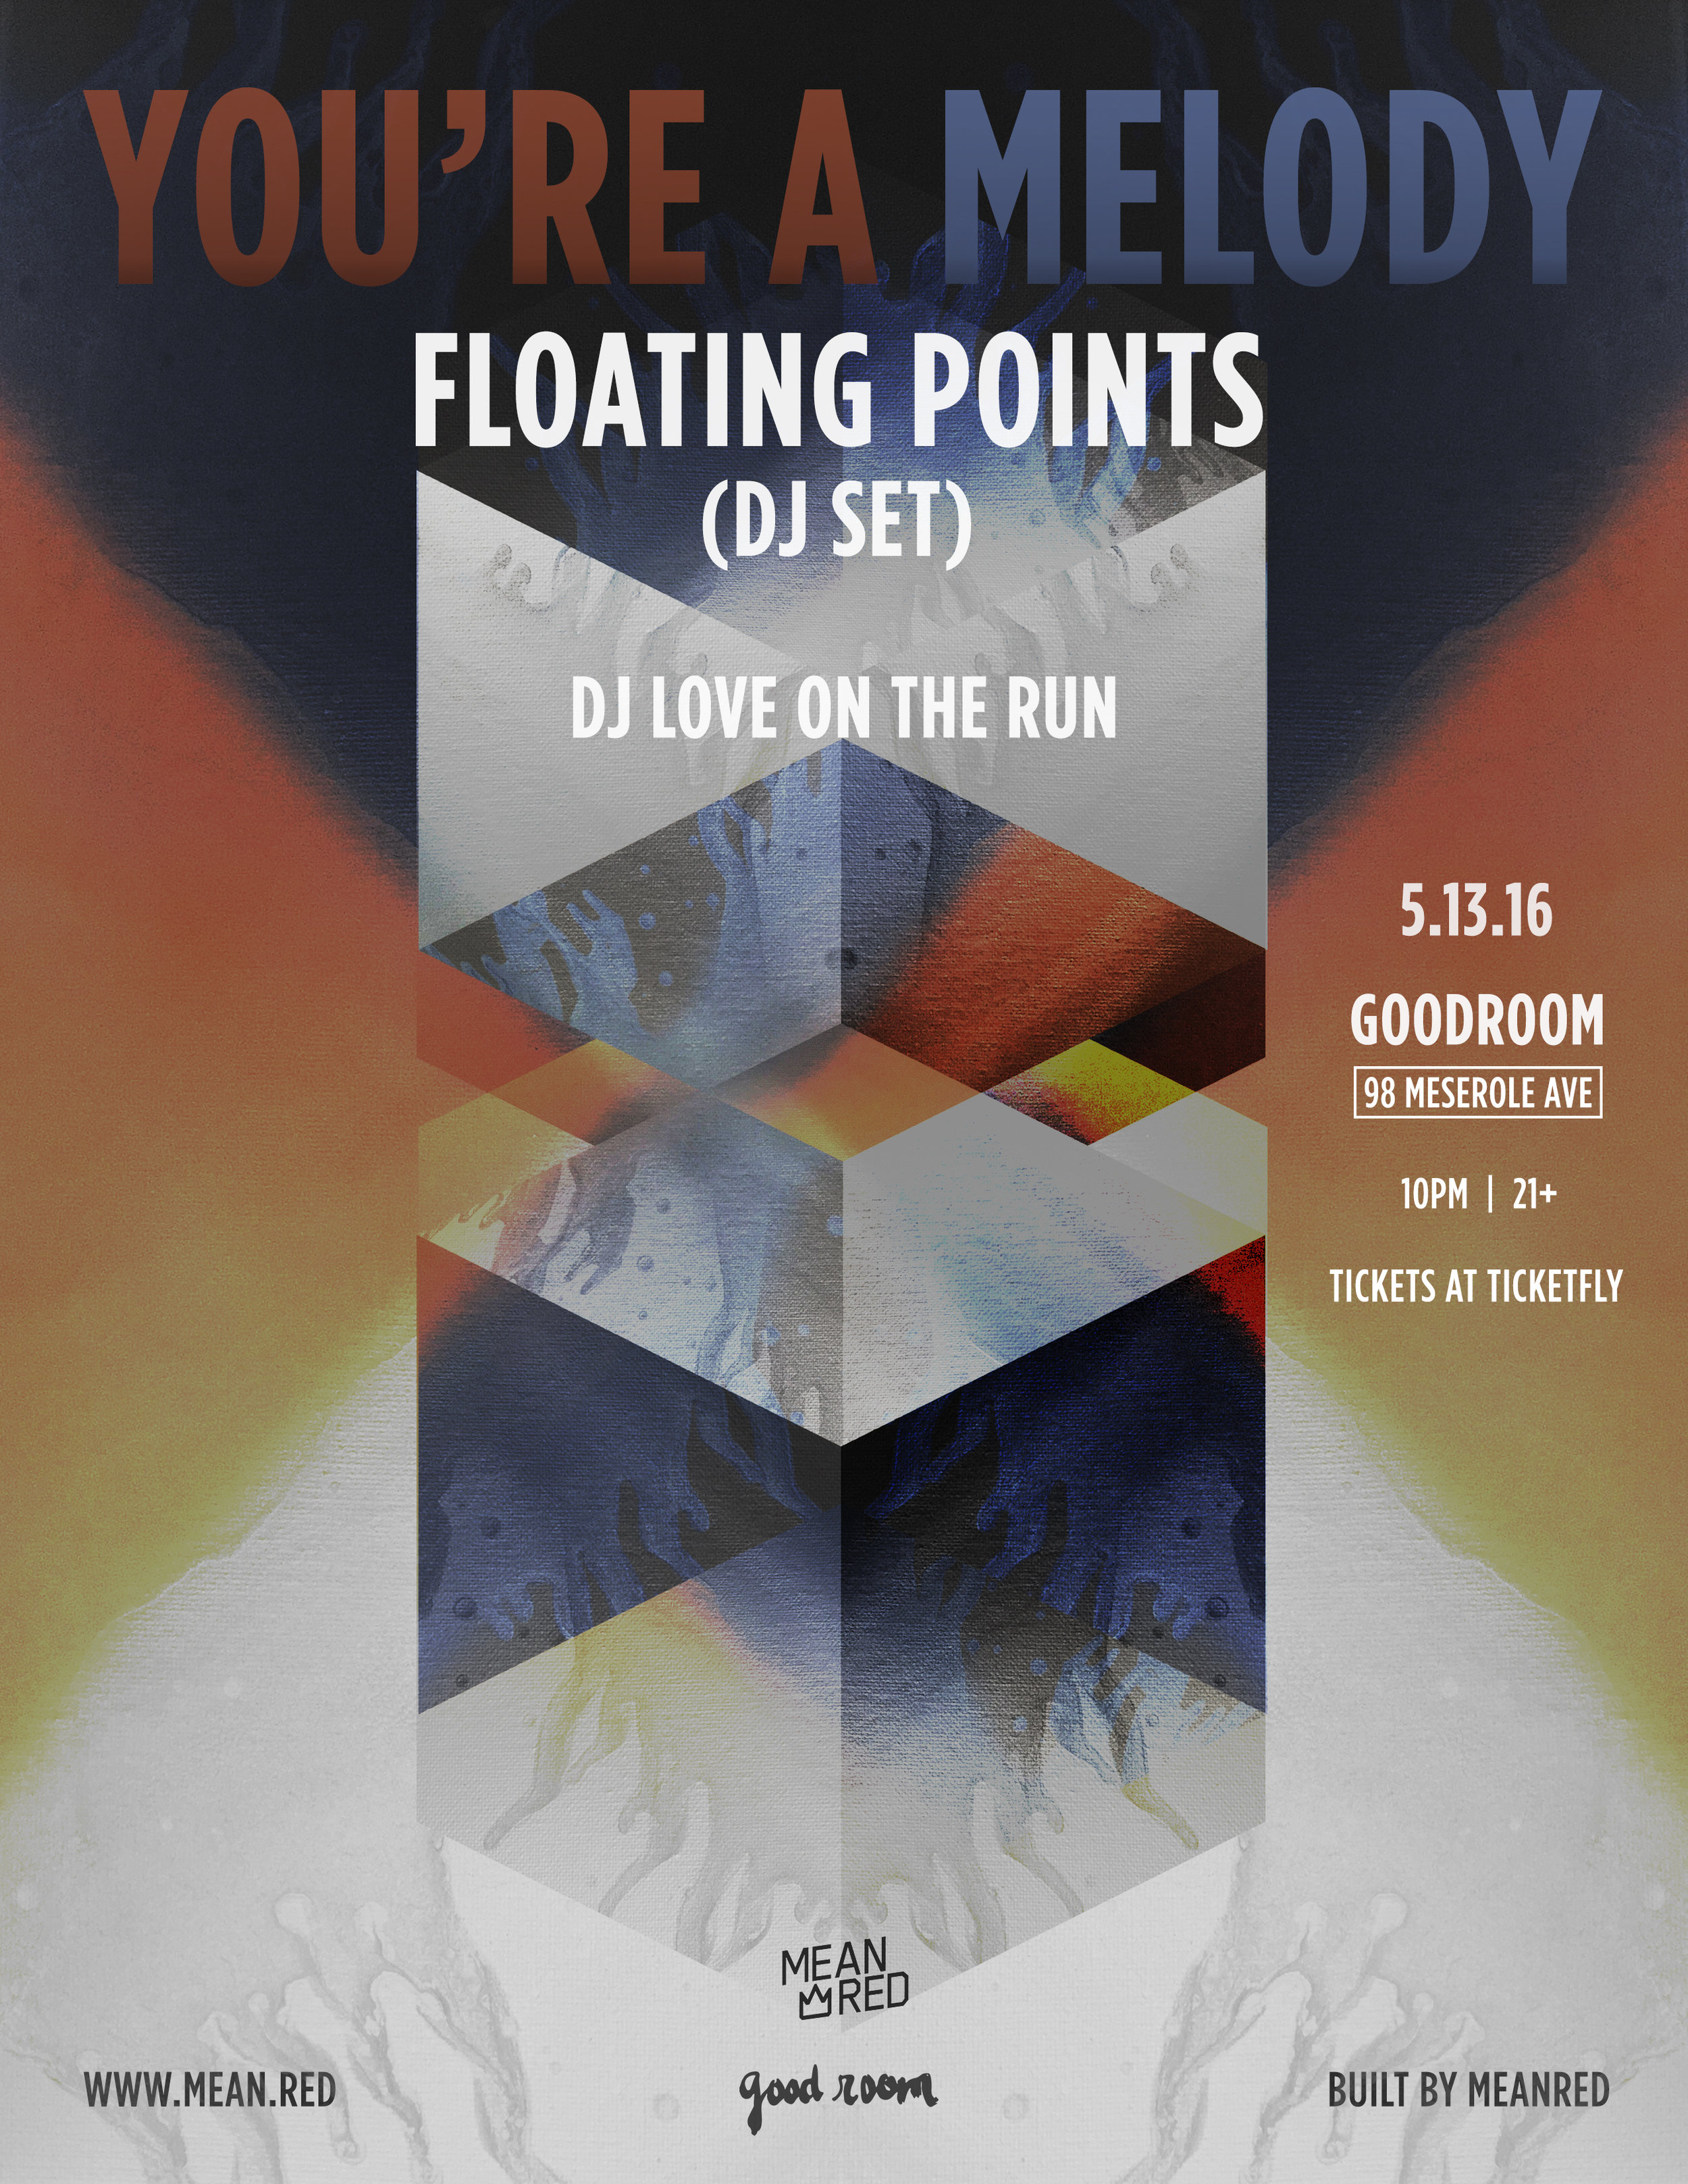 051316_FLOATING-POINTS_8.5x11.jpg